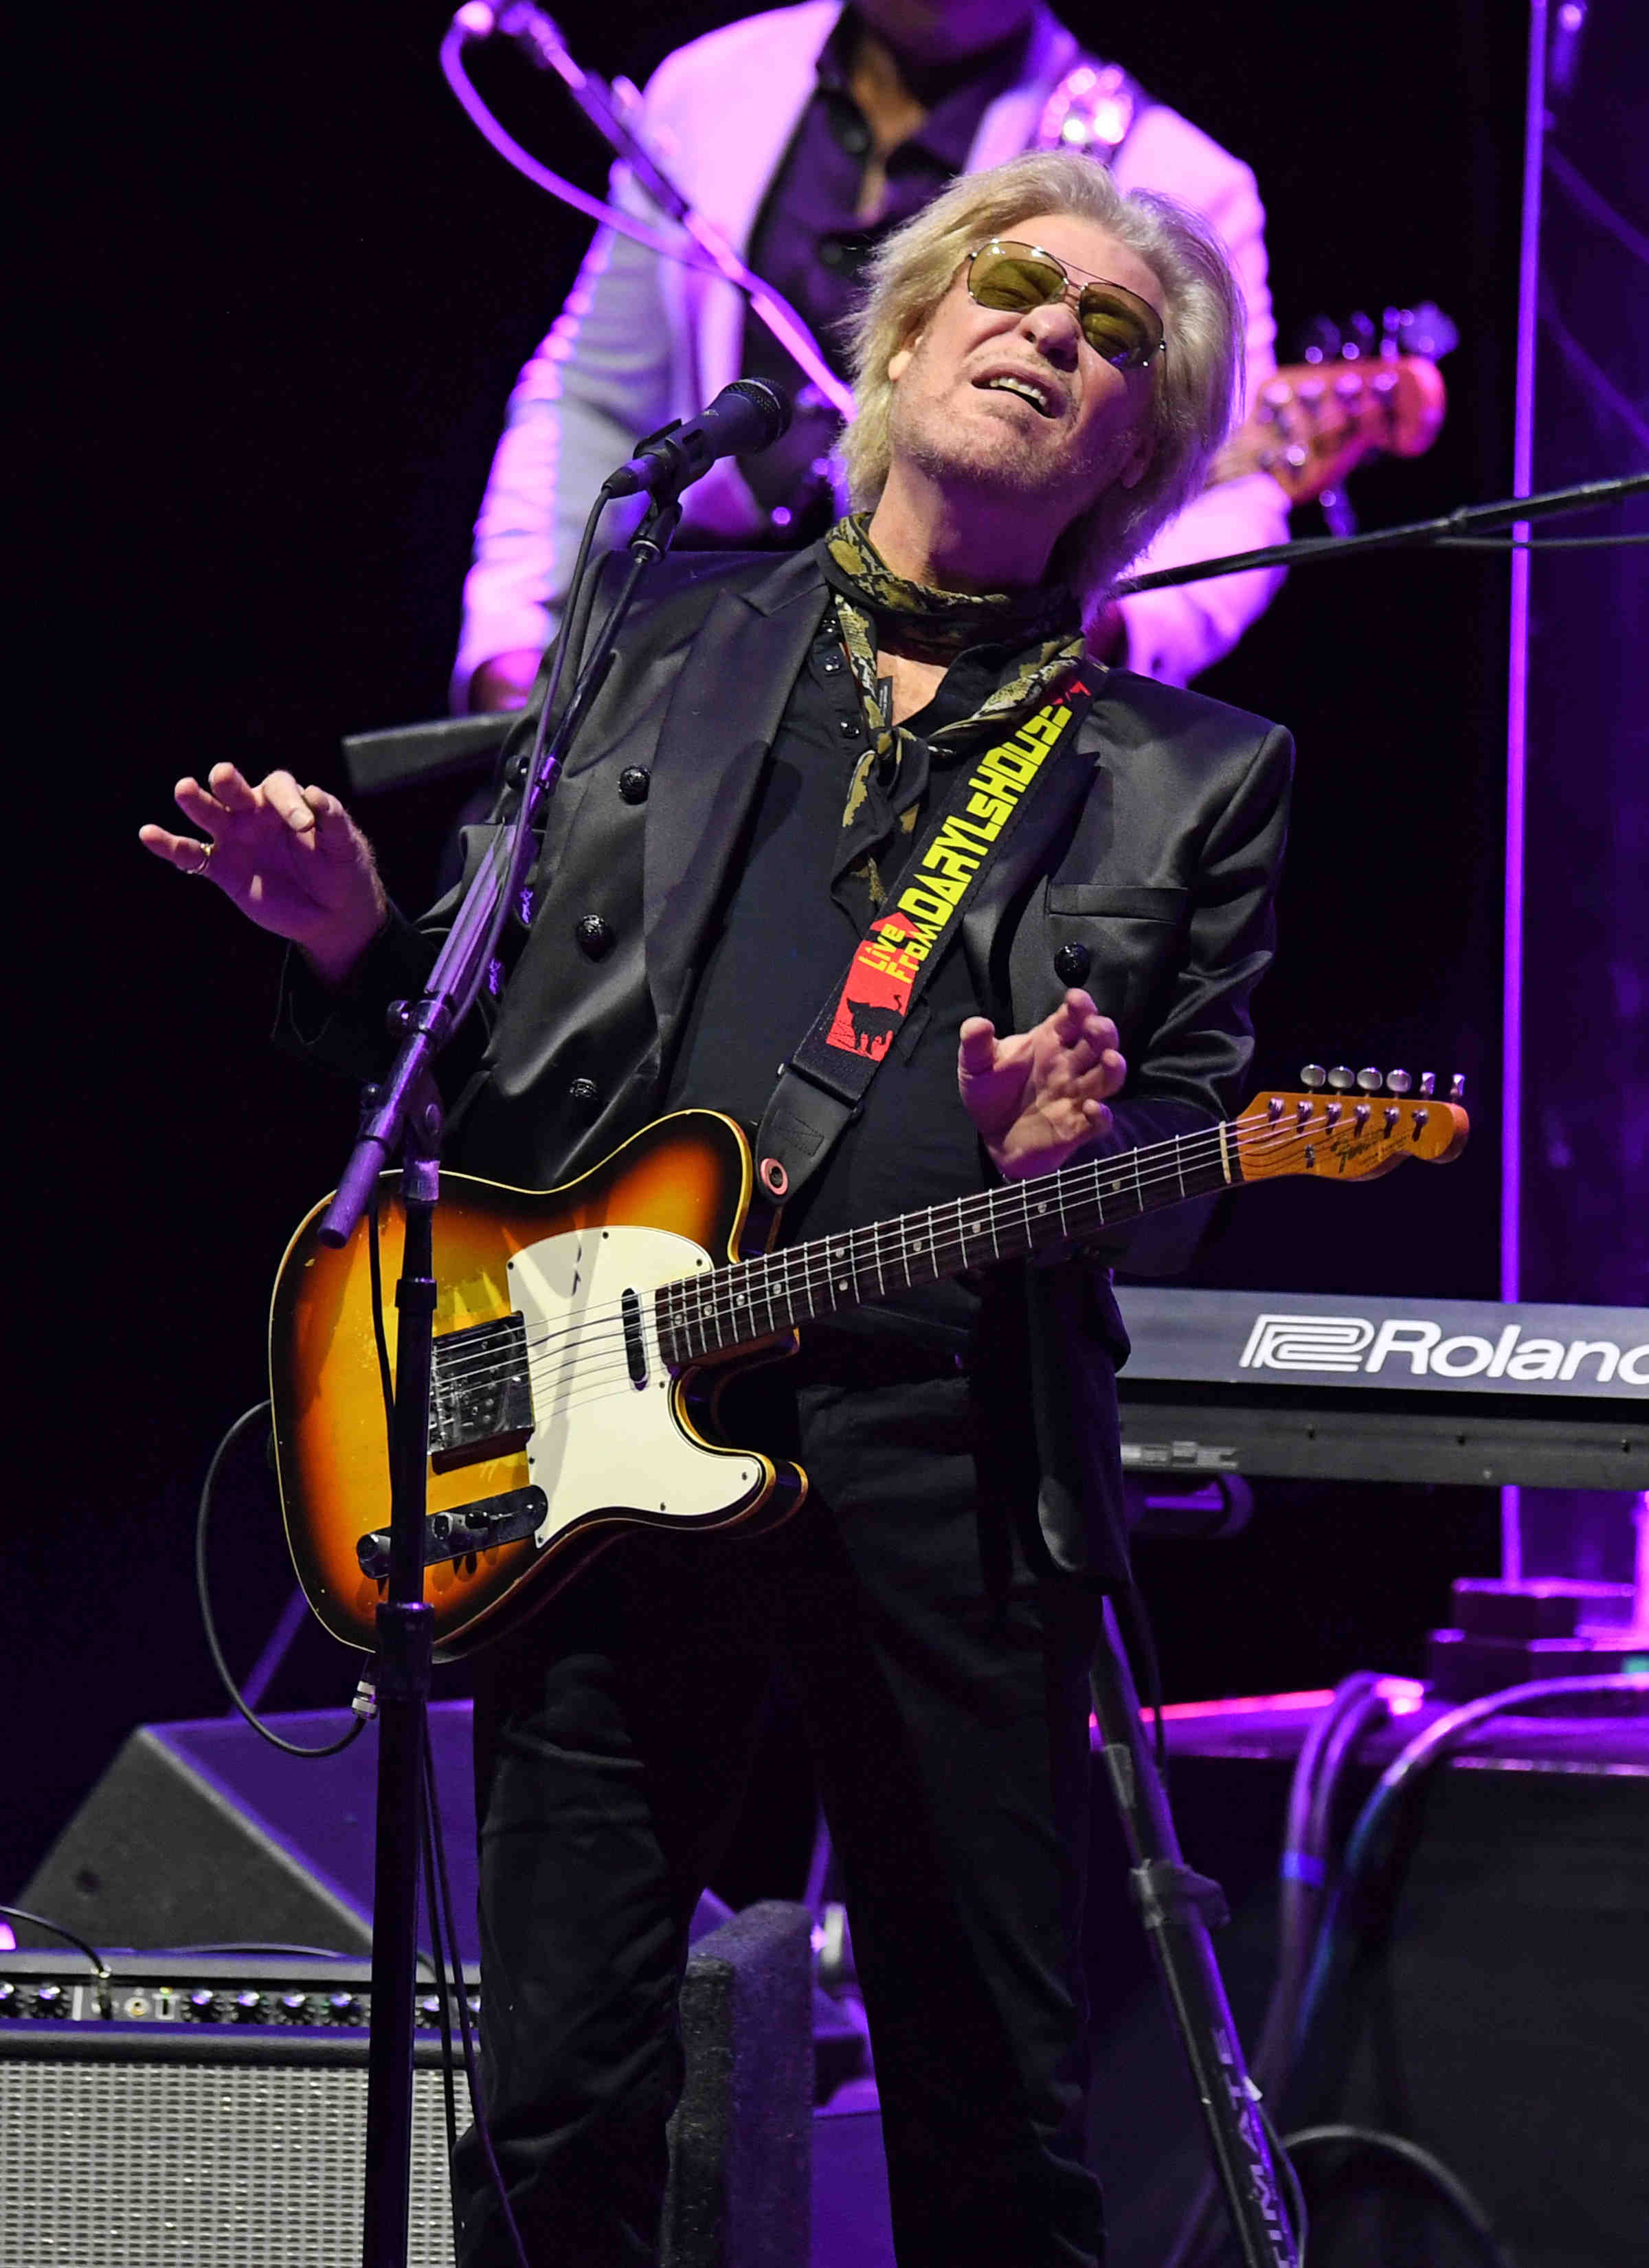 Daryl Hall of Hall and Oates performs at Seminole Hard Rock Hotel & Casino.